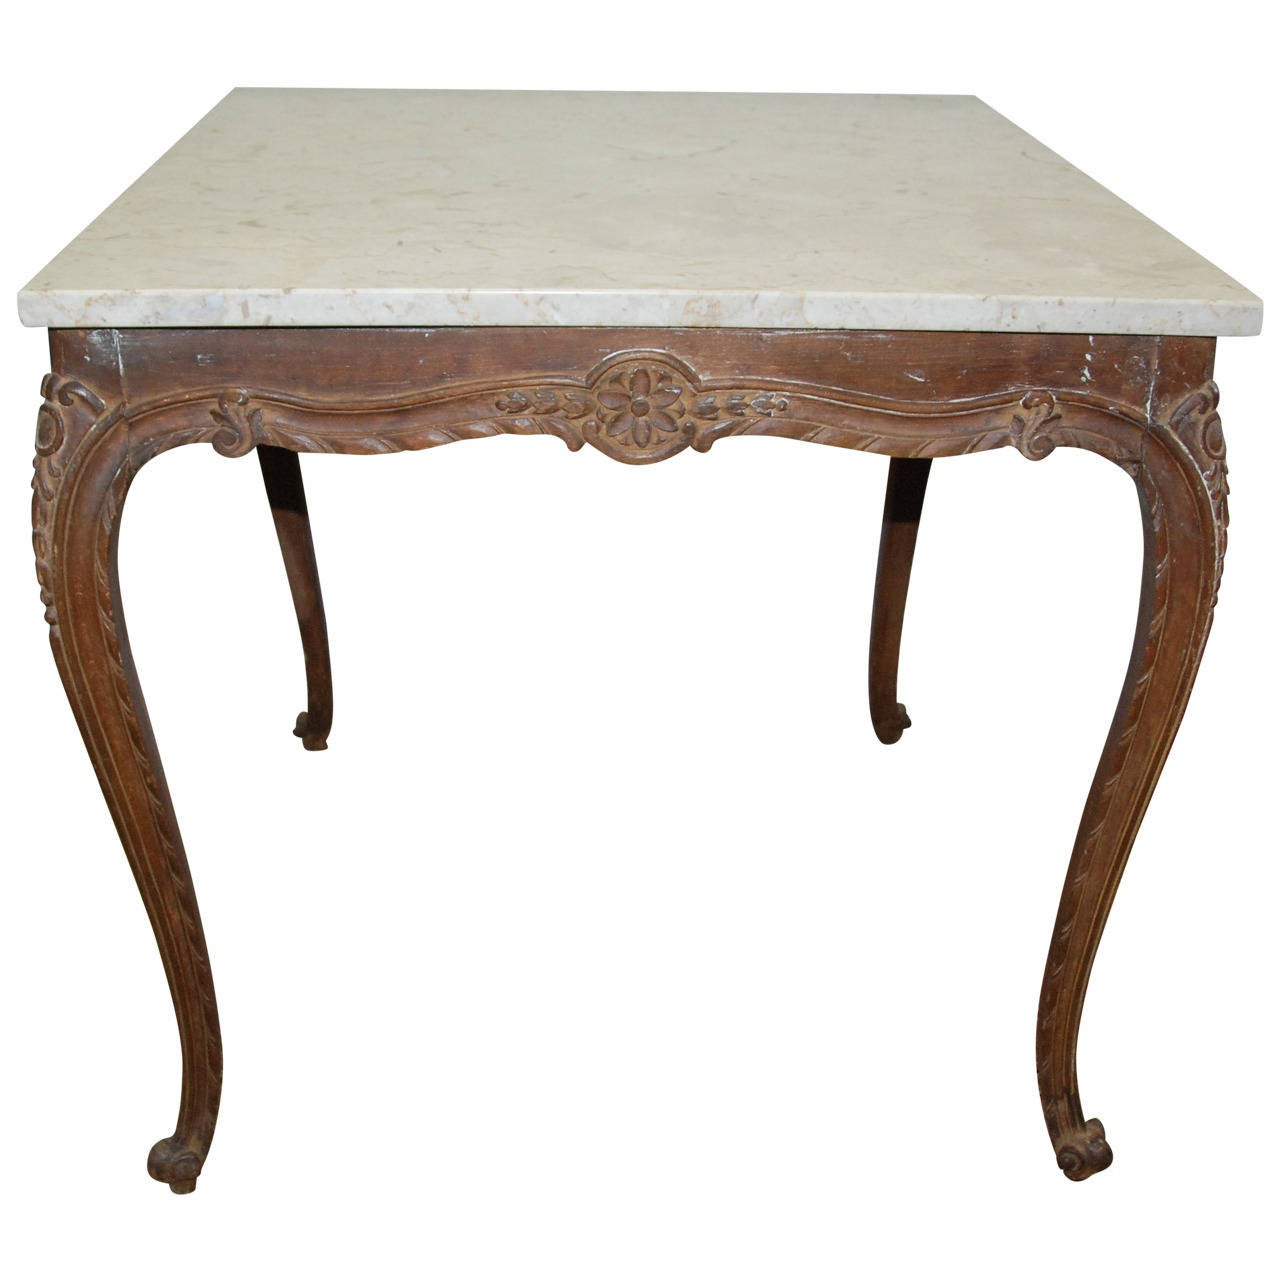 French marble top table for sale at 1stdibs for Marble table tops for sale